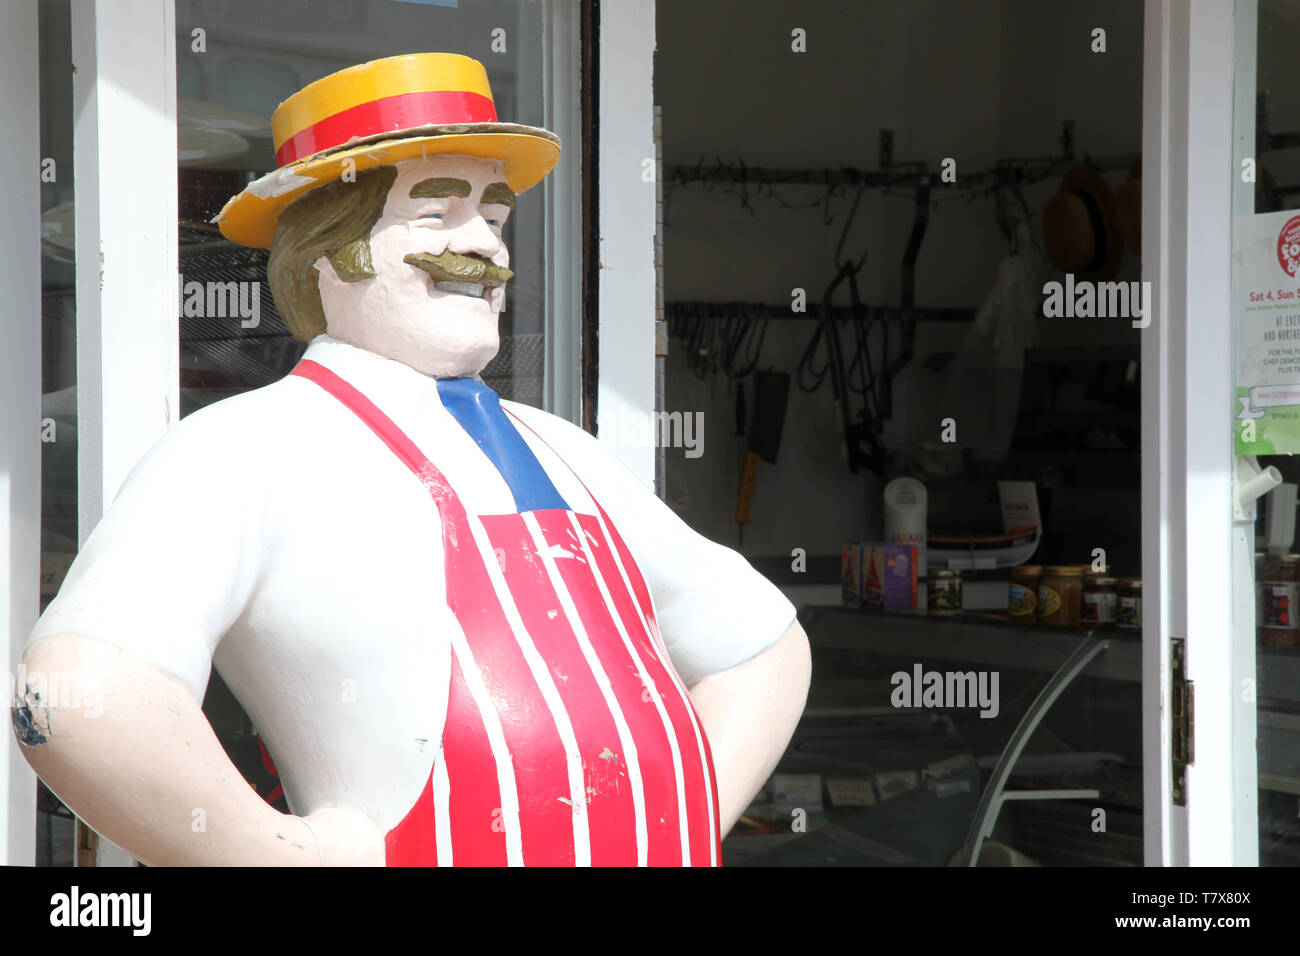 Lyme Regis, Dorset - Antique, life size, jolly butcher statue standing outside butchers shop in the daytime - Stock Image